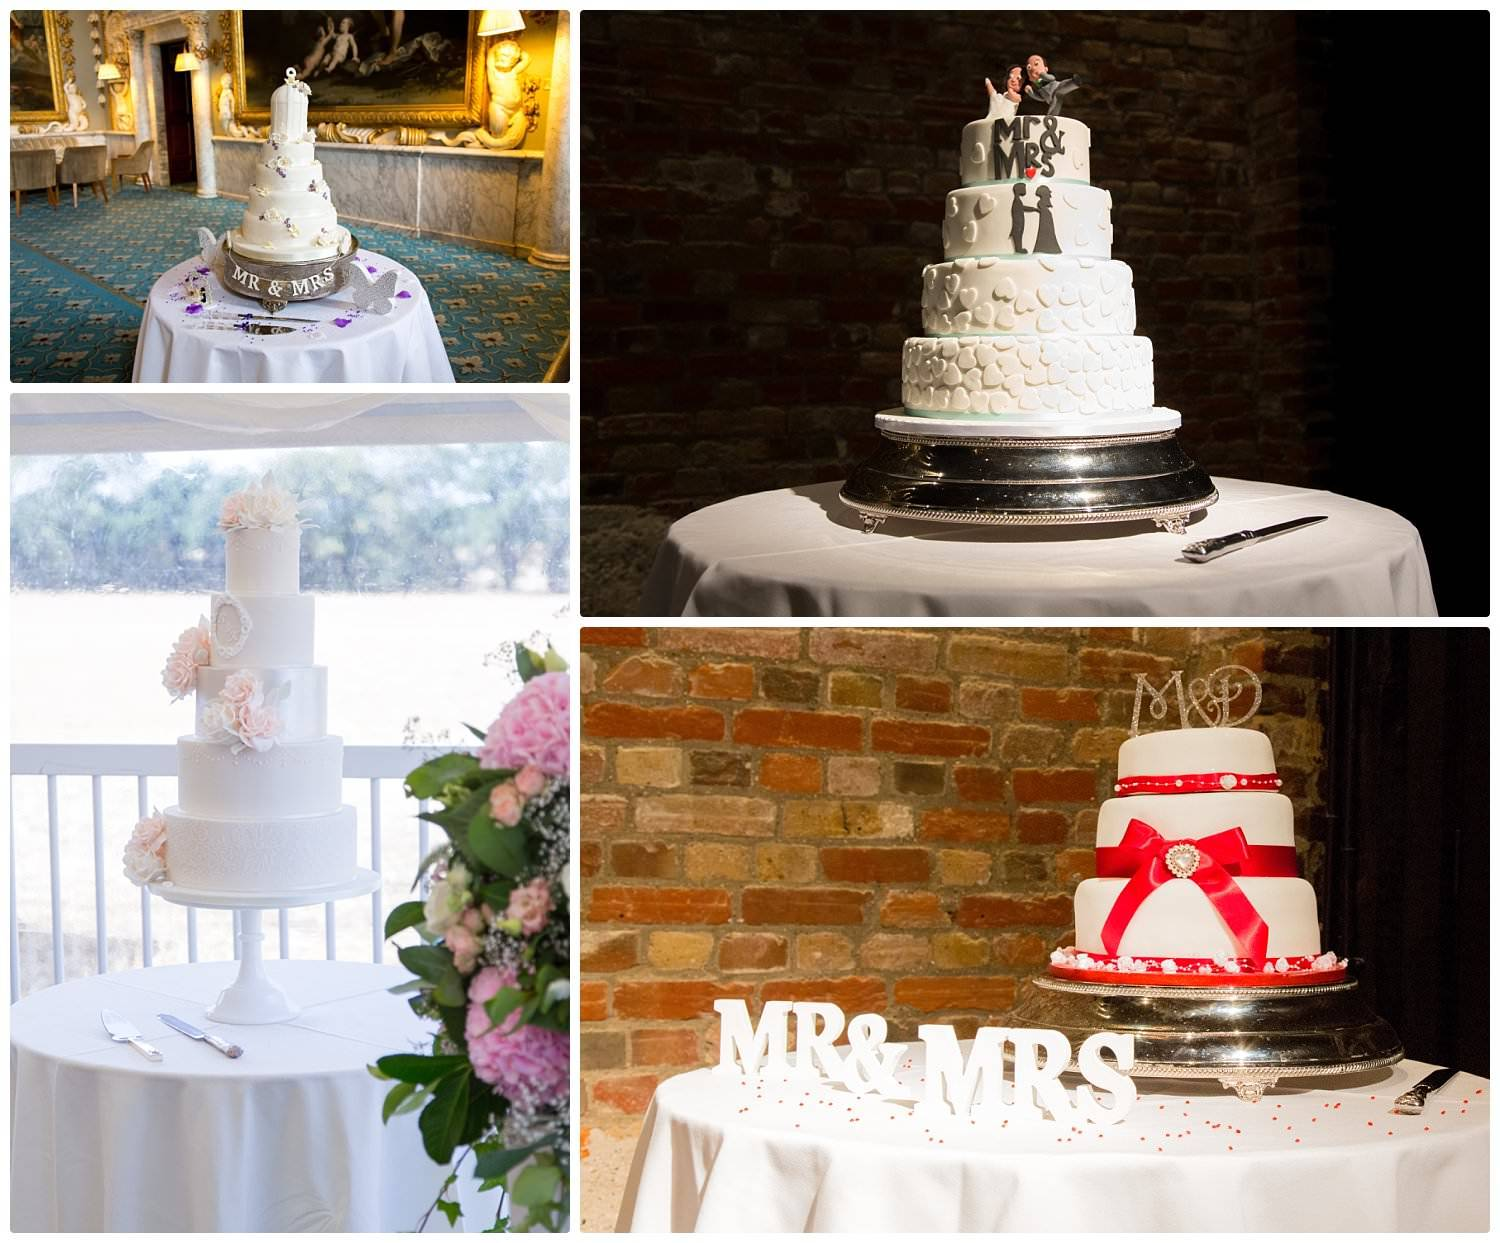 Top tips for choosing your wedding cake-Weather